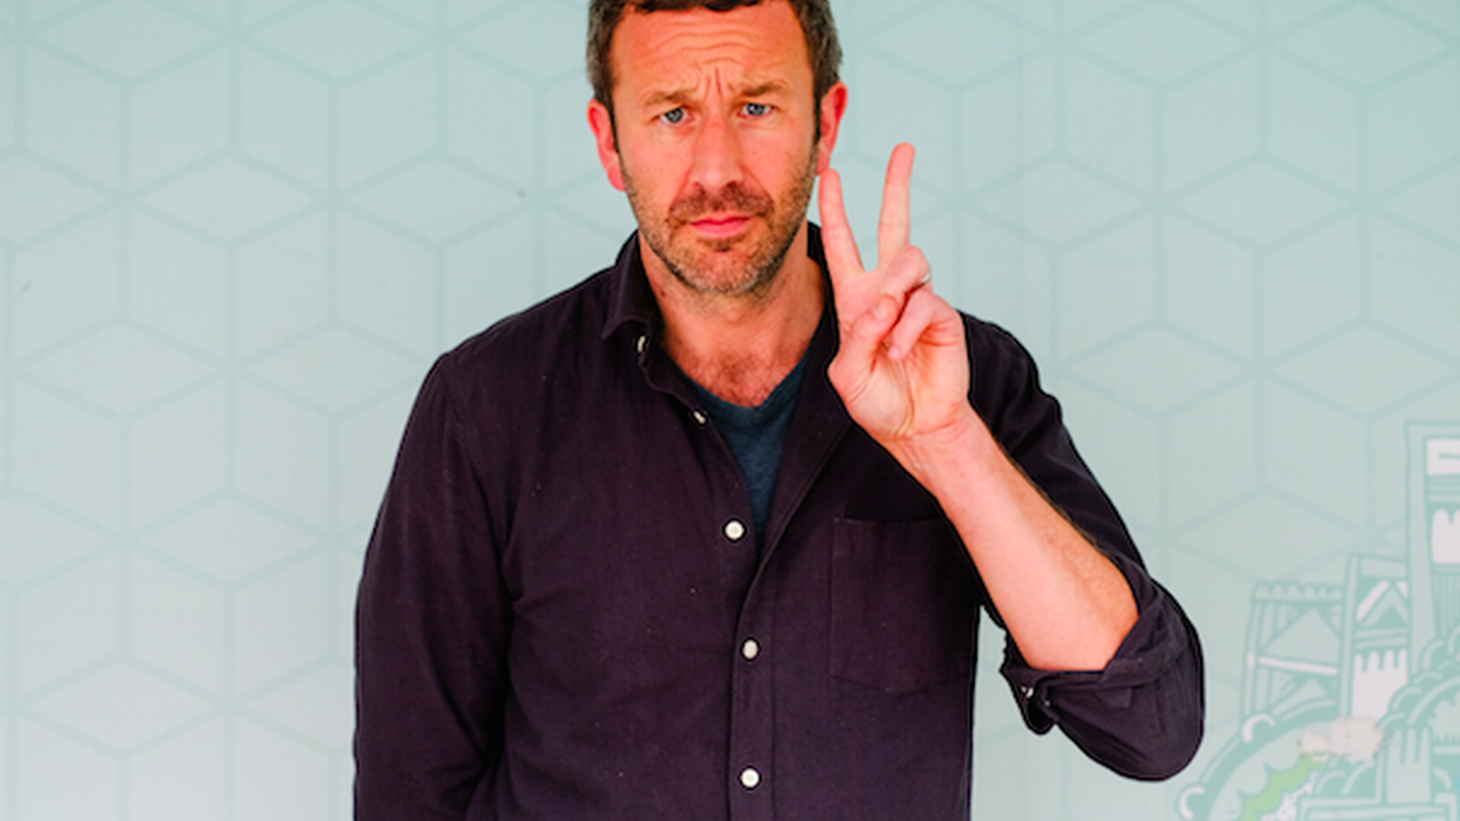 """You might remember Chris O'Dowd as the the friendly Irish cop in """"Bridesmaids."""" But in the new film """"Love After Love,"""" his character is dealing with the death of his father. In his grief, he lashes out at the people he loves most."""